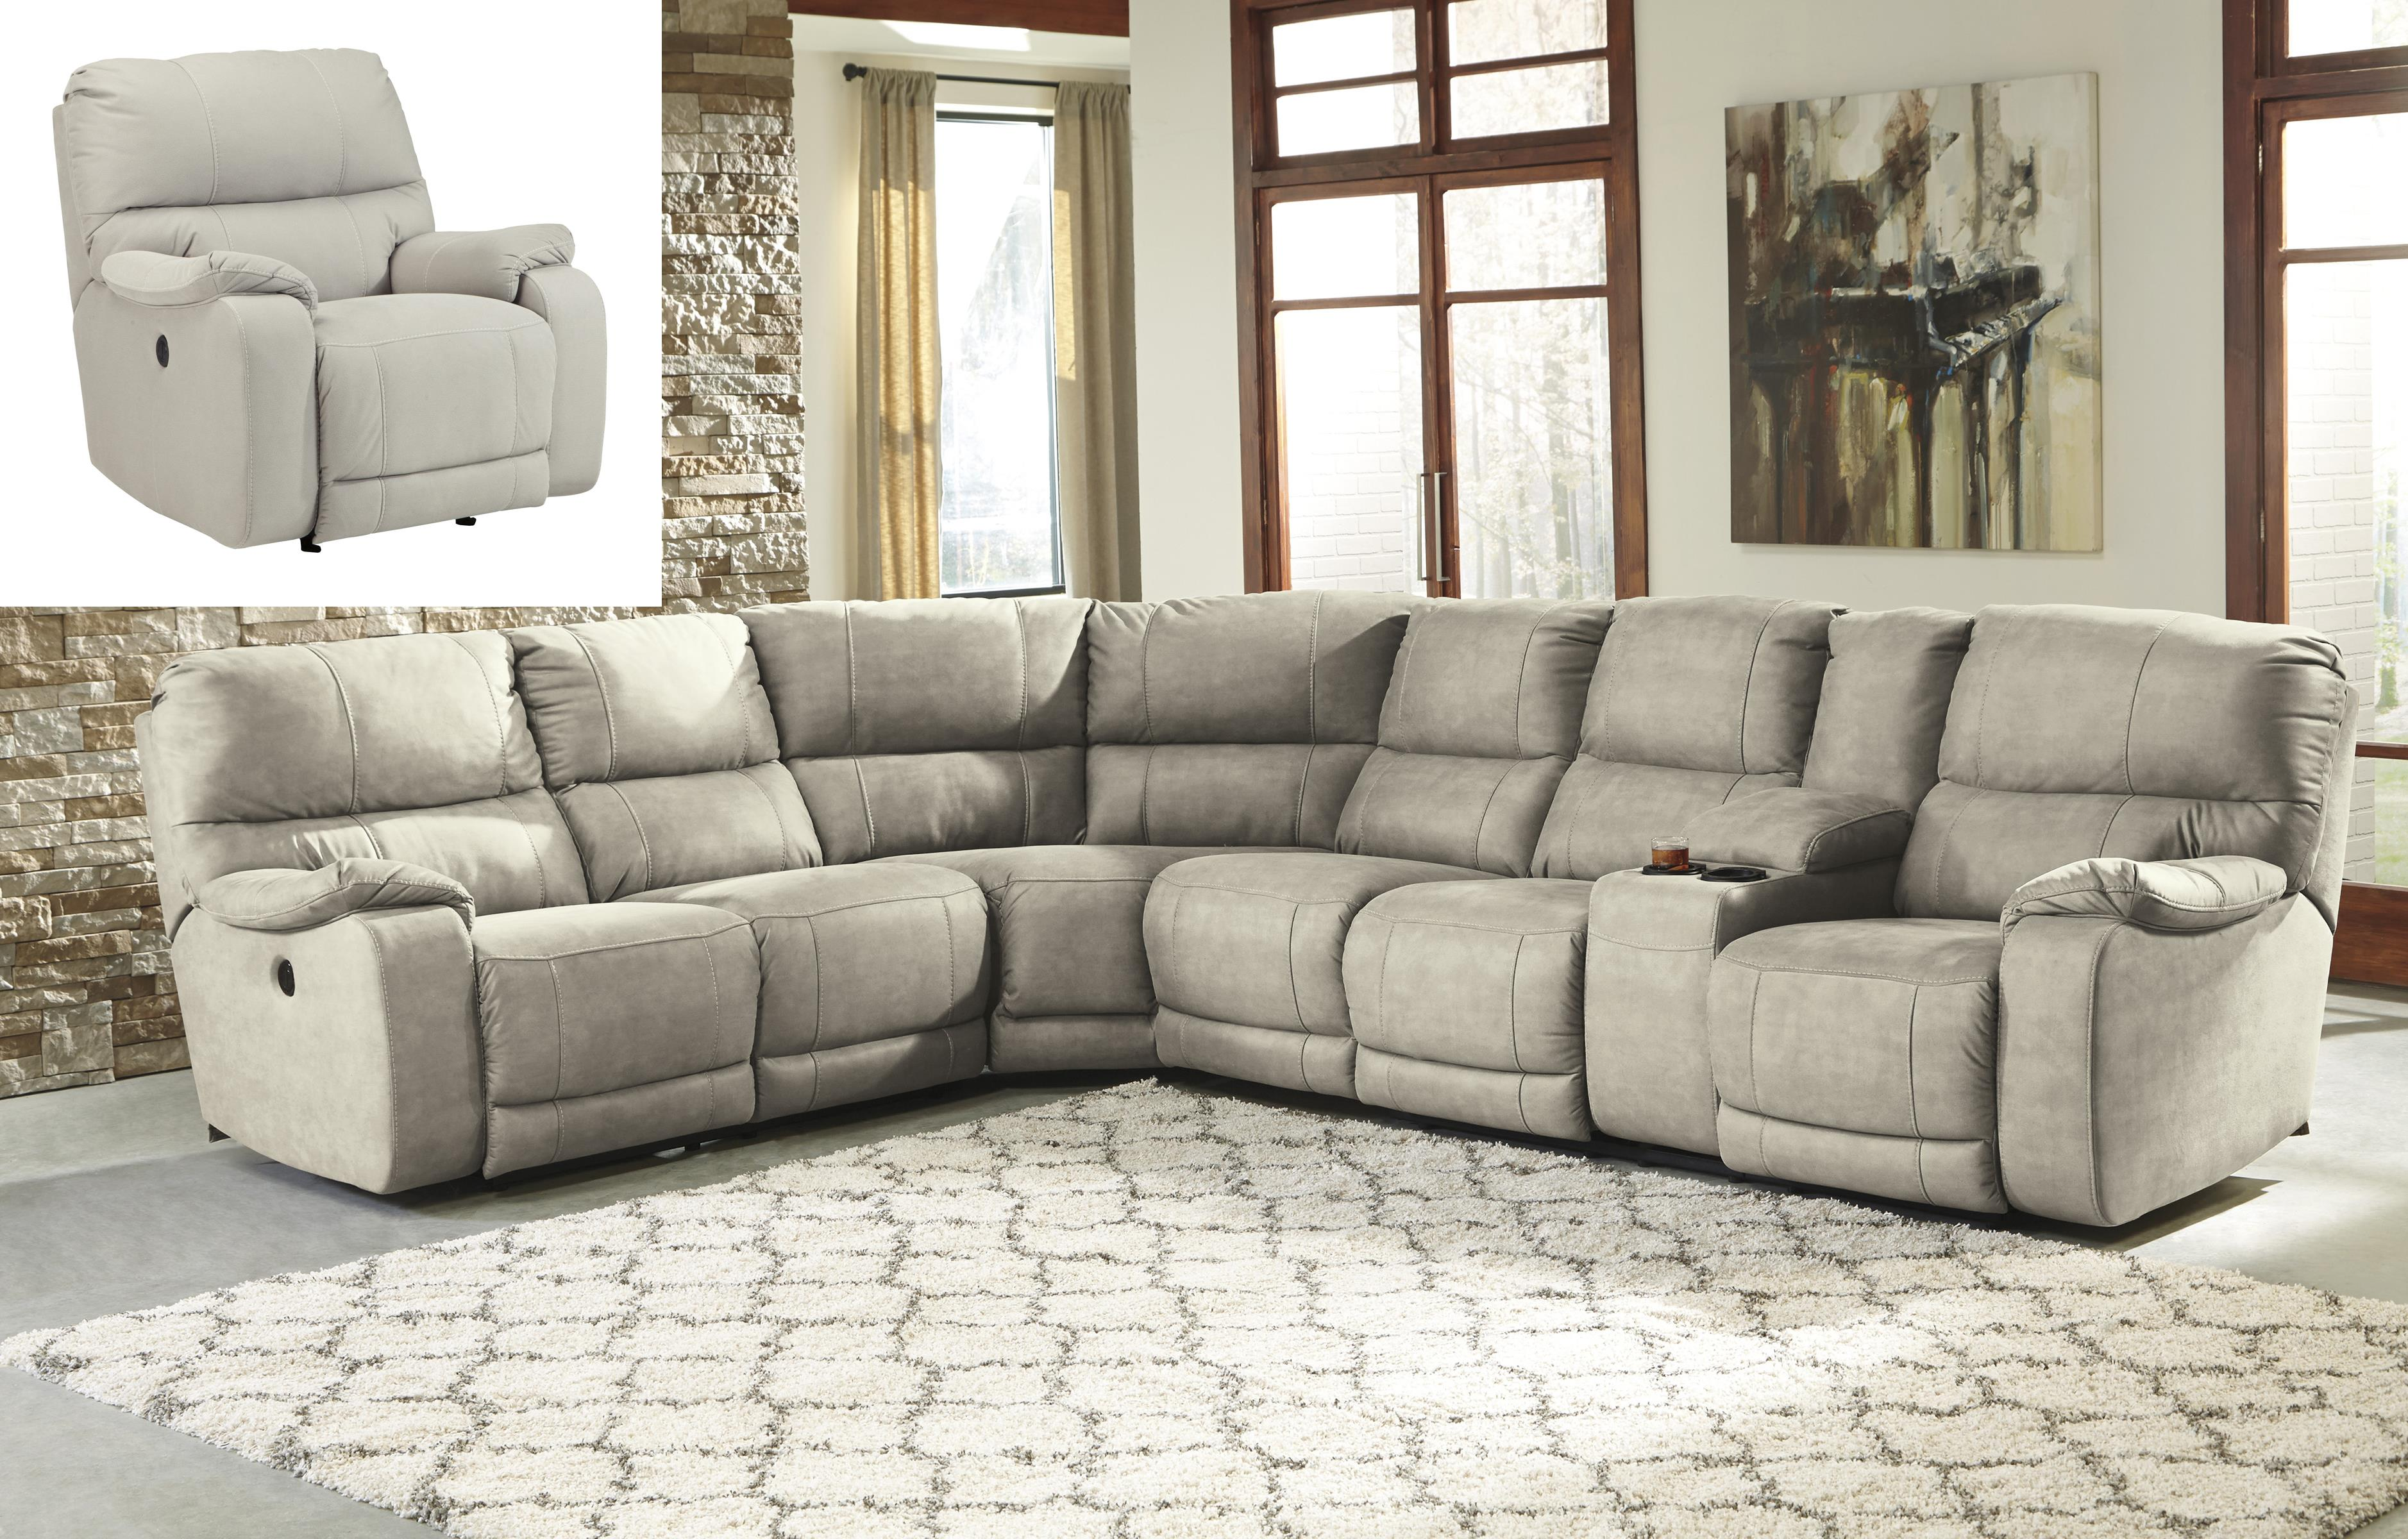 Benchcraft Bohannon Reclining Living Room Group - Item Number: 57401 Living Room Group 4